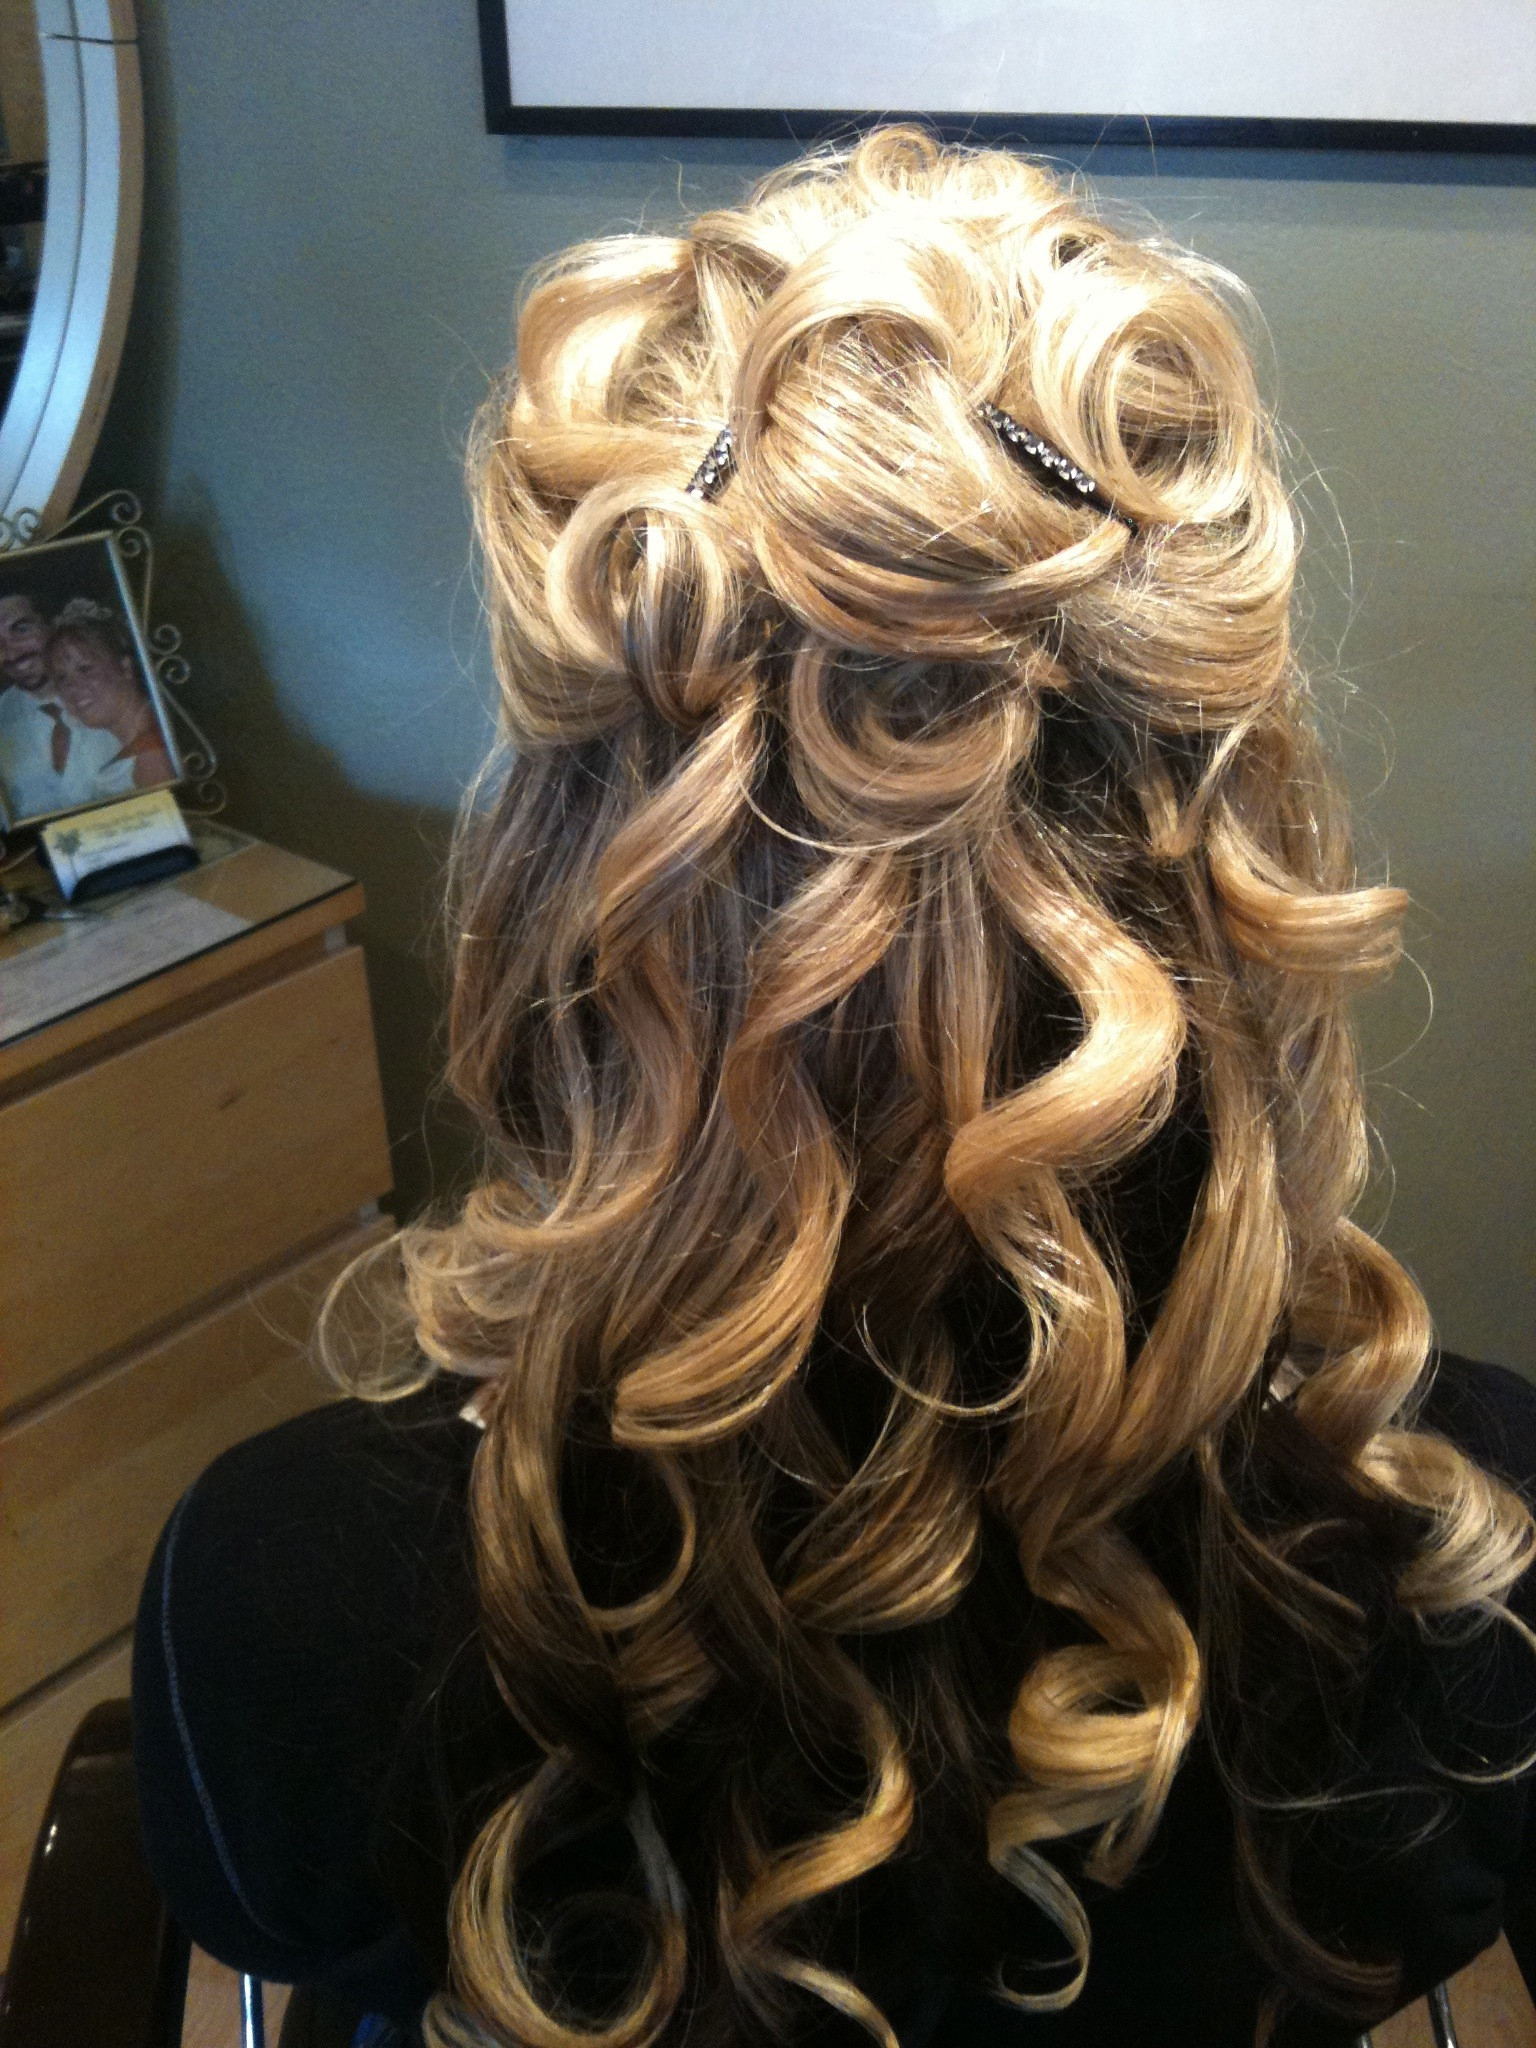 Long Hairstyles Updos  20 Easy Updo Hairstyles for Long Hair MagMent